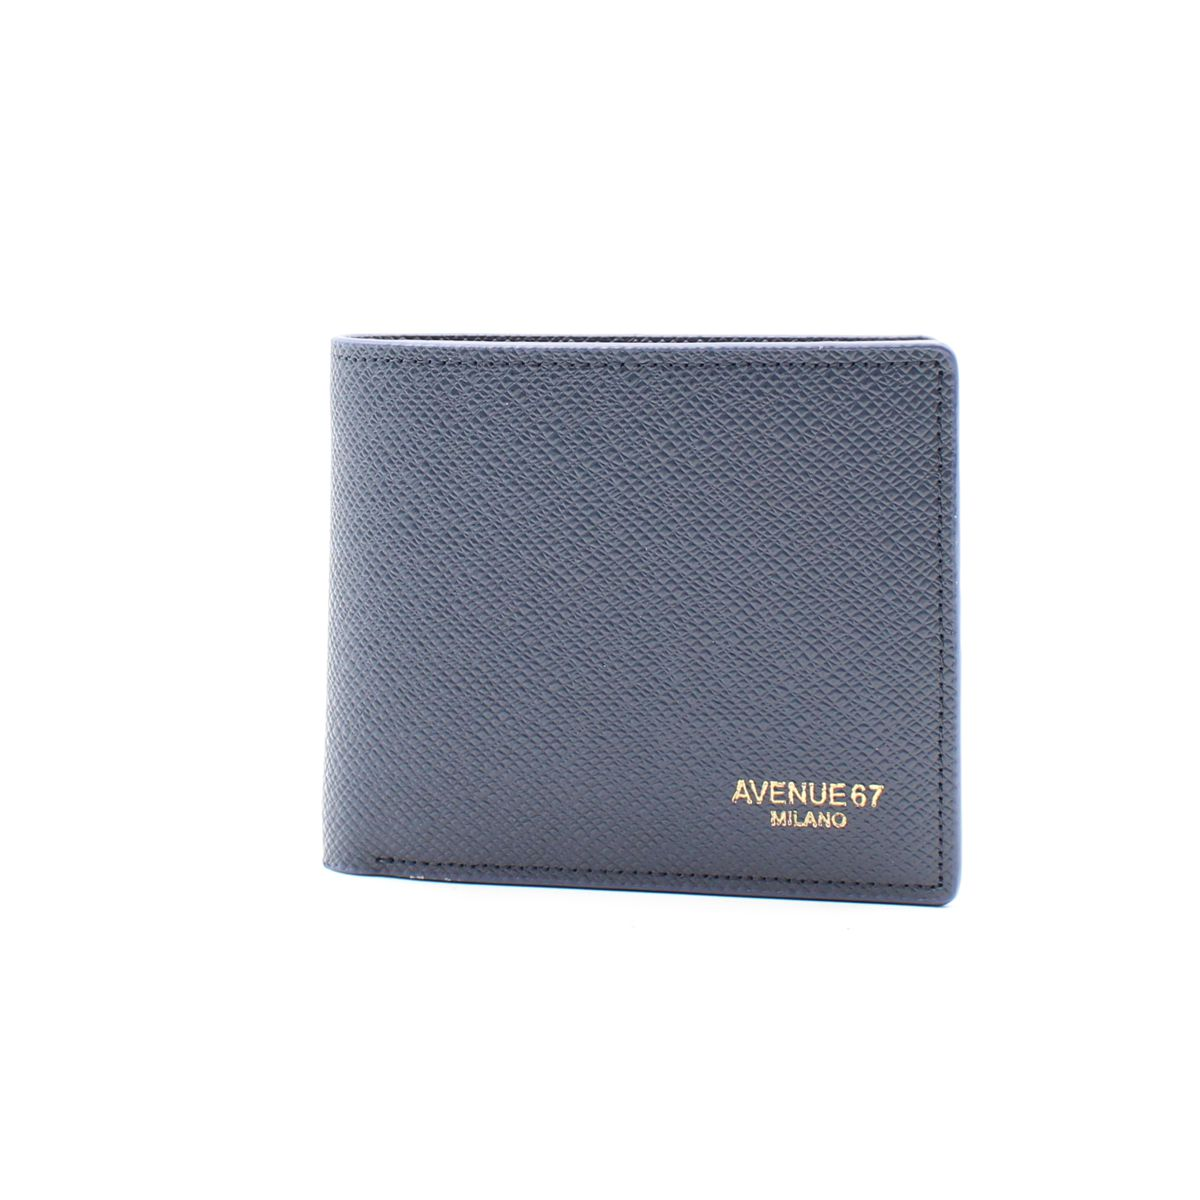 Men's wallets Blue Avenue 67